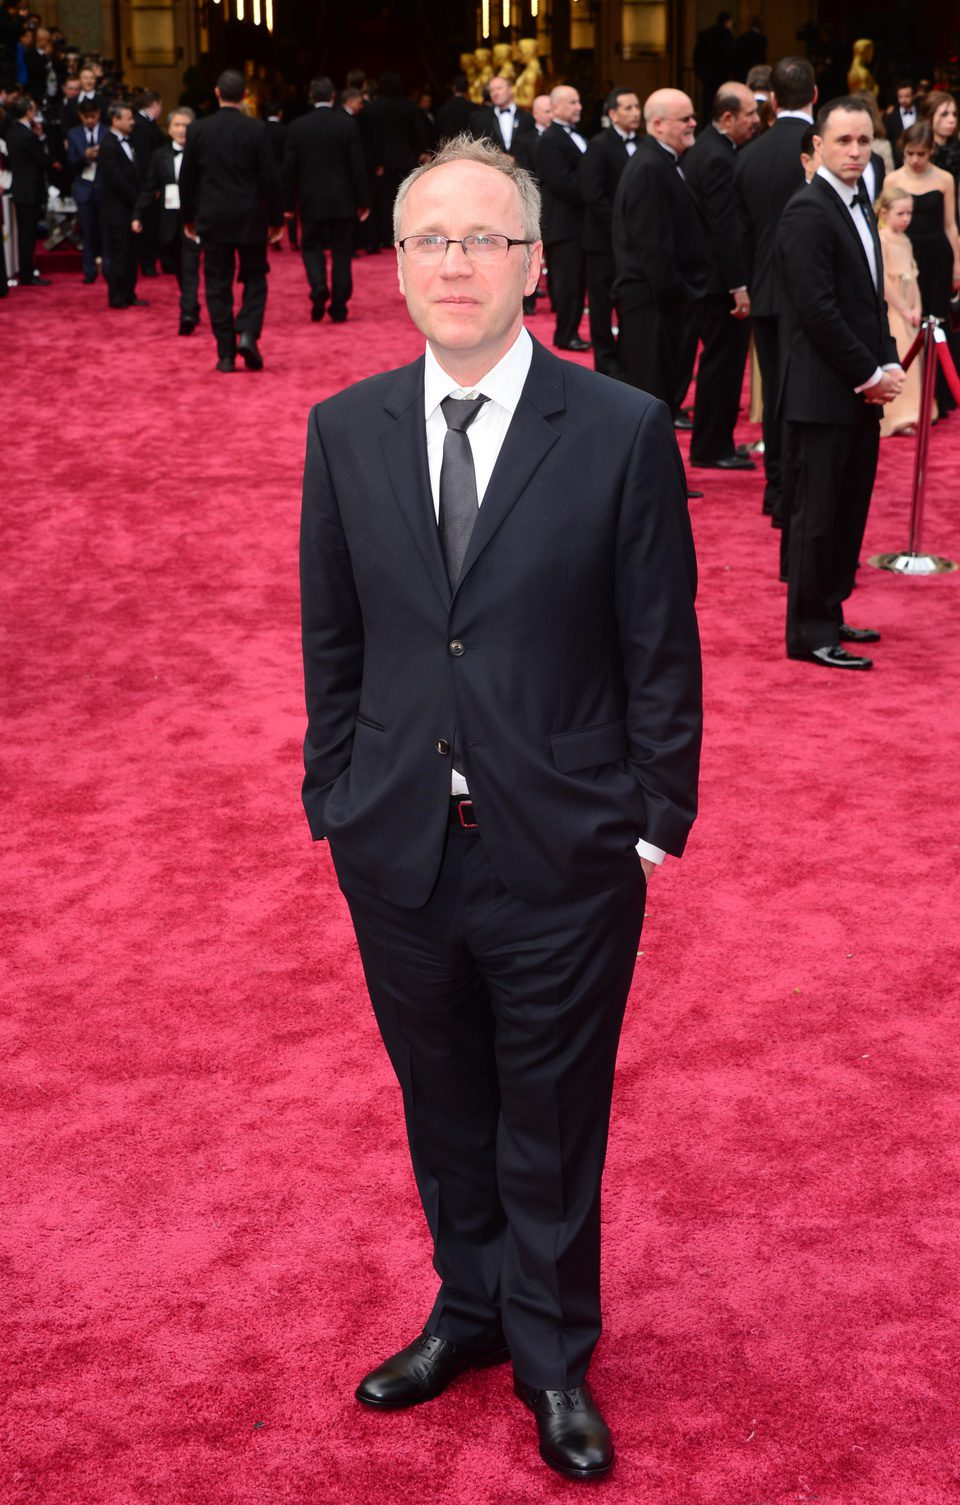 Philippe Le Sourd at the 2014 Oscars